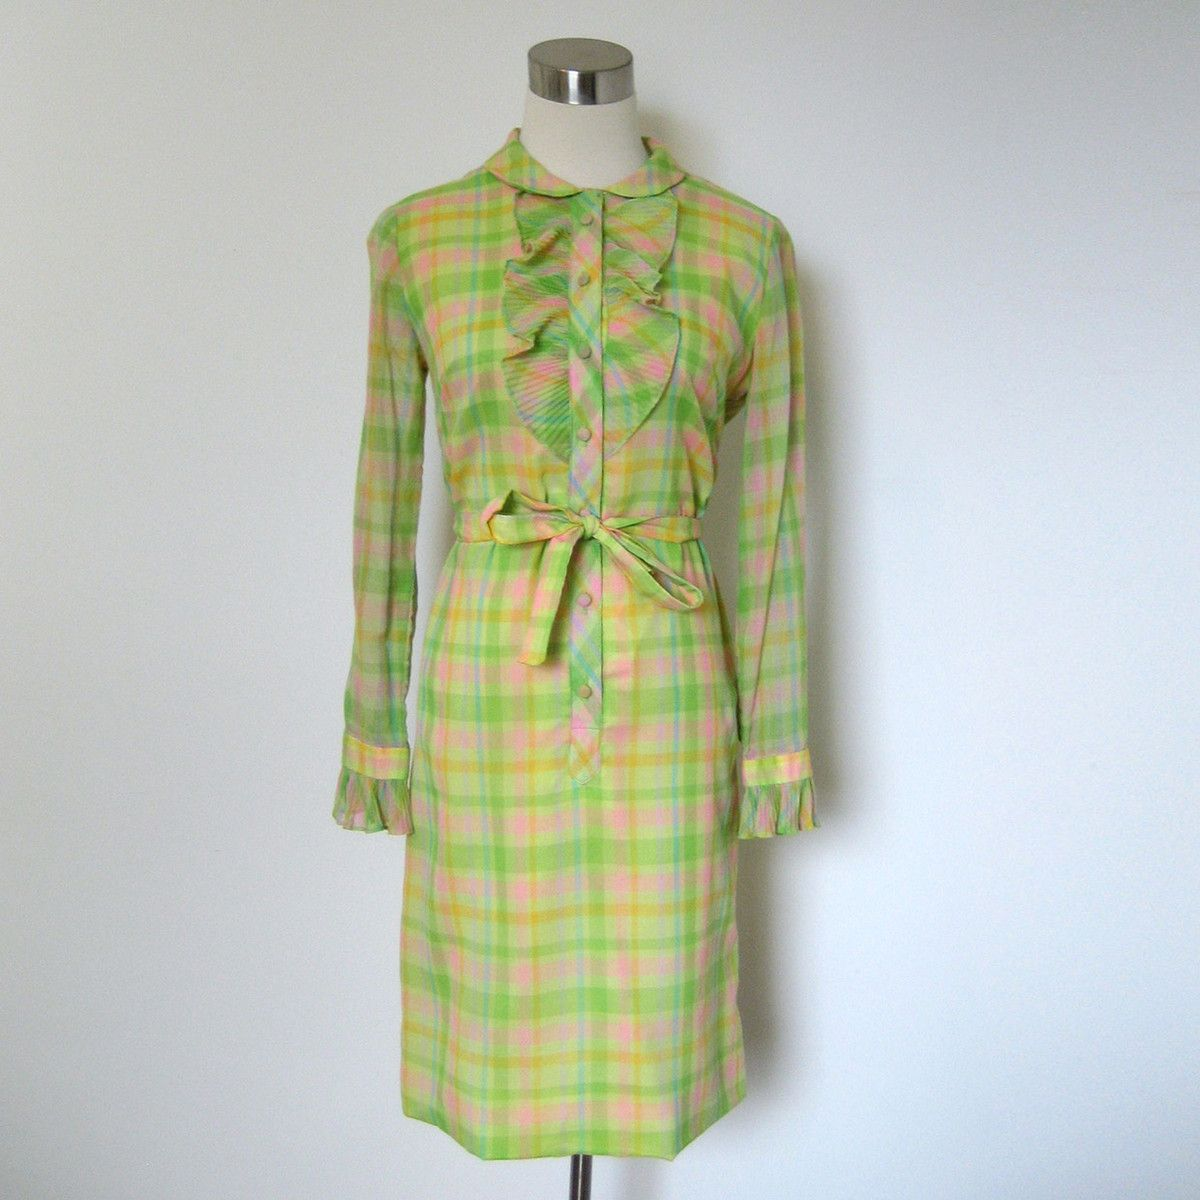 Fab 60s Artwork: 60s Lois Young Neon Shirtdress